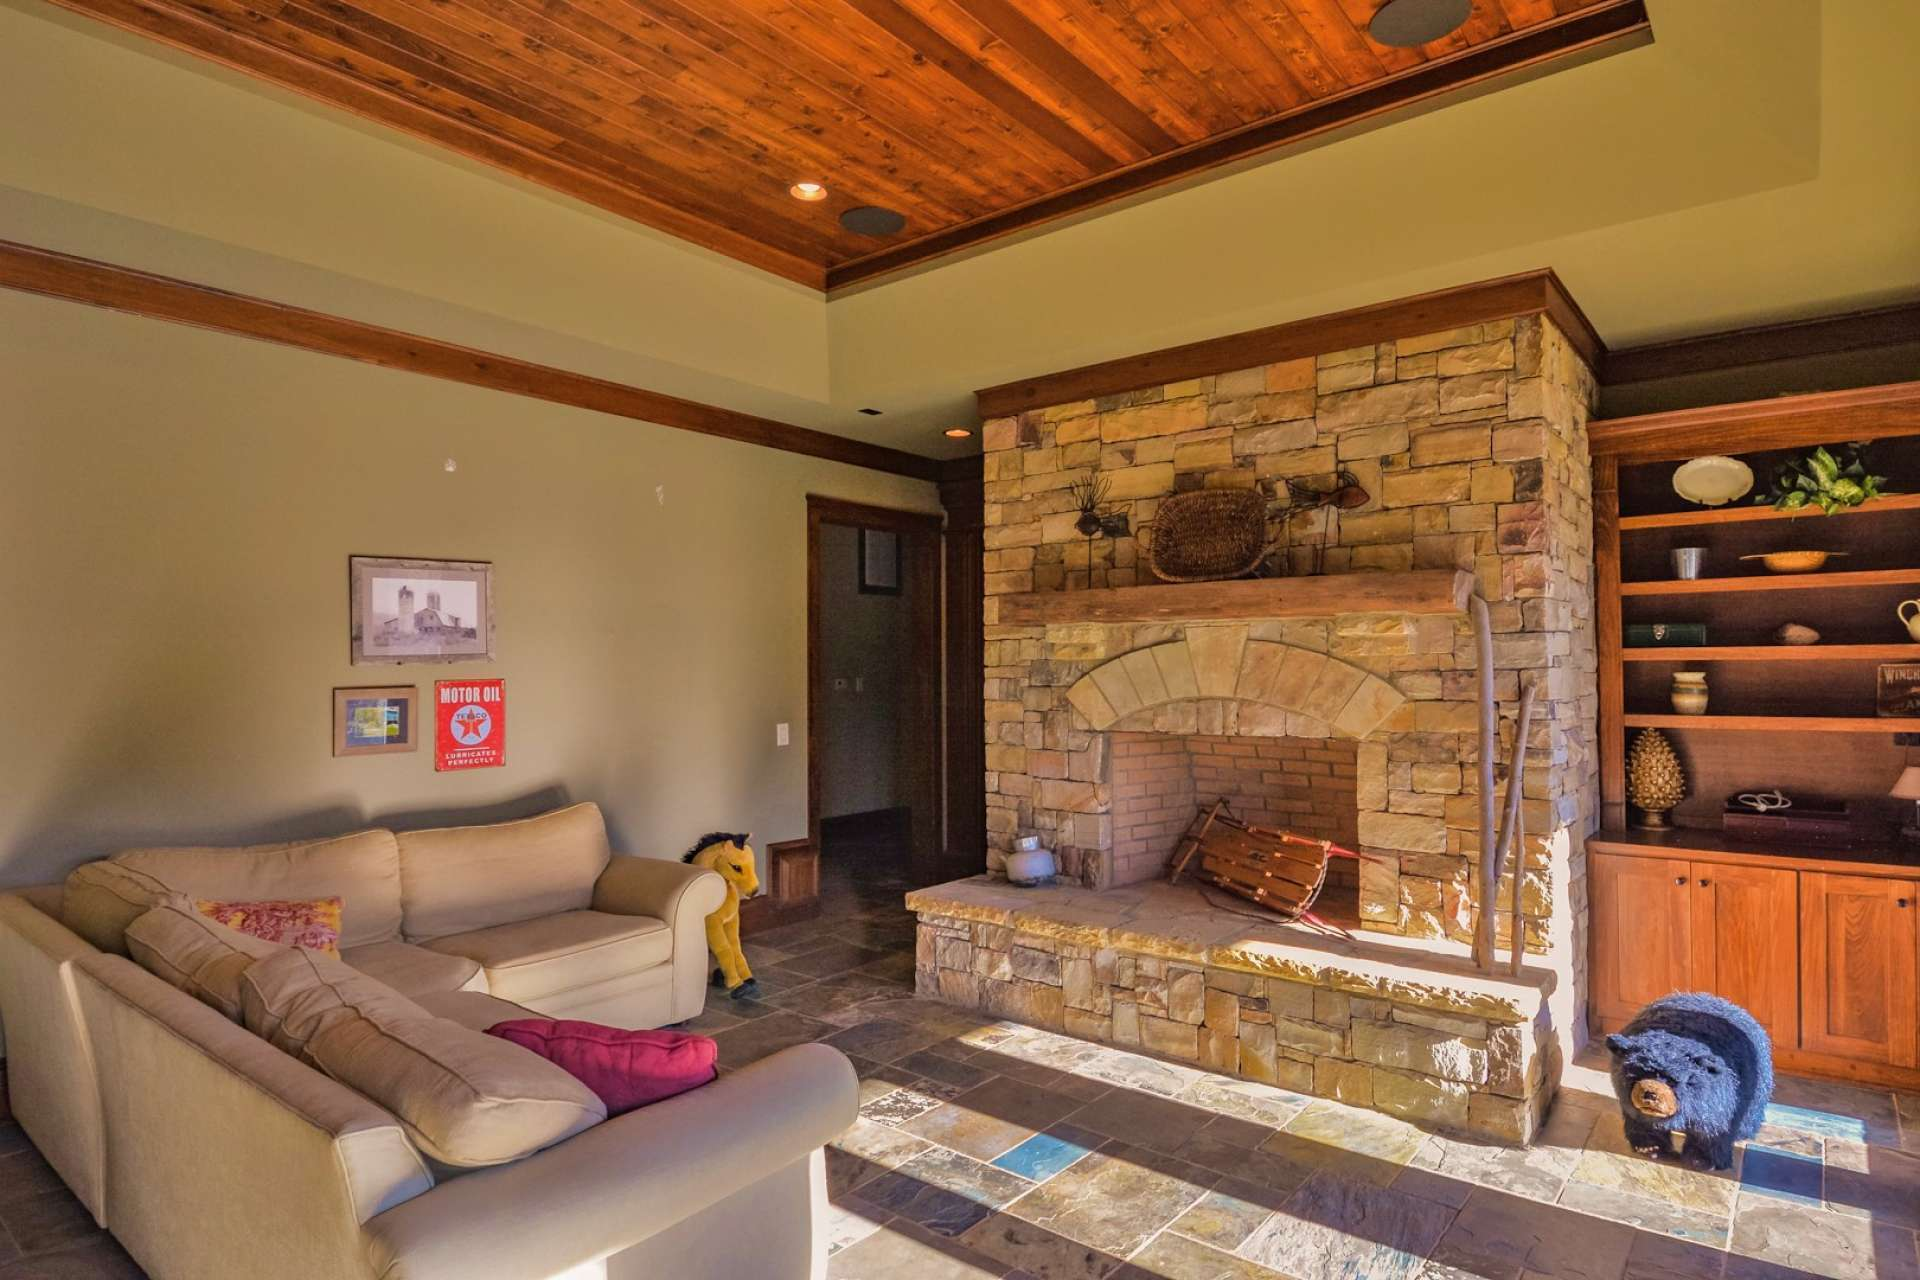 The full walk-out lower level offers a family room with another wood burning fireplace, more built-ins and it's own bar, plus gorgeous tile floors.